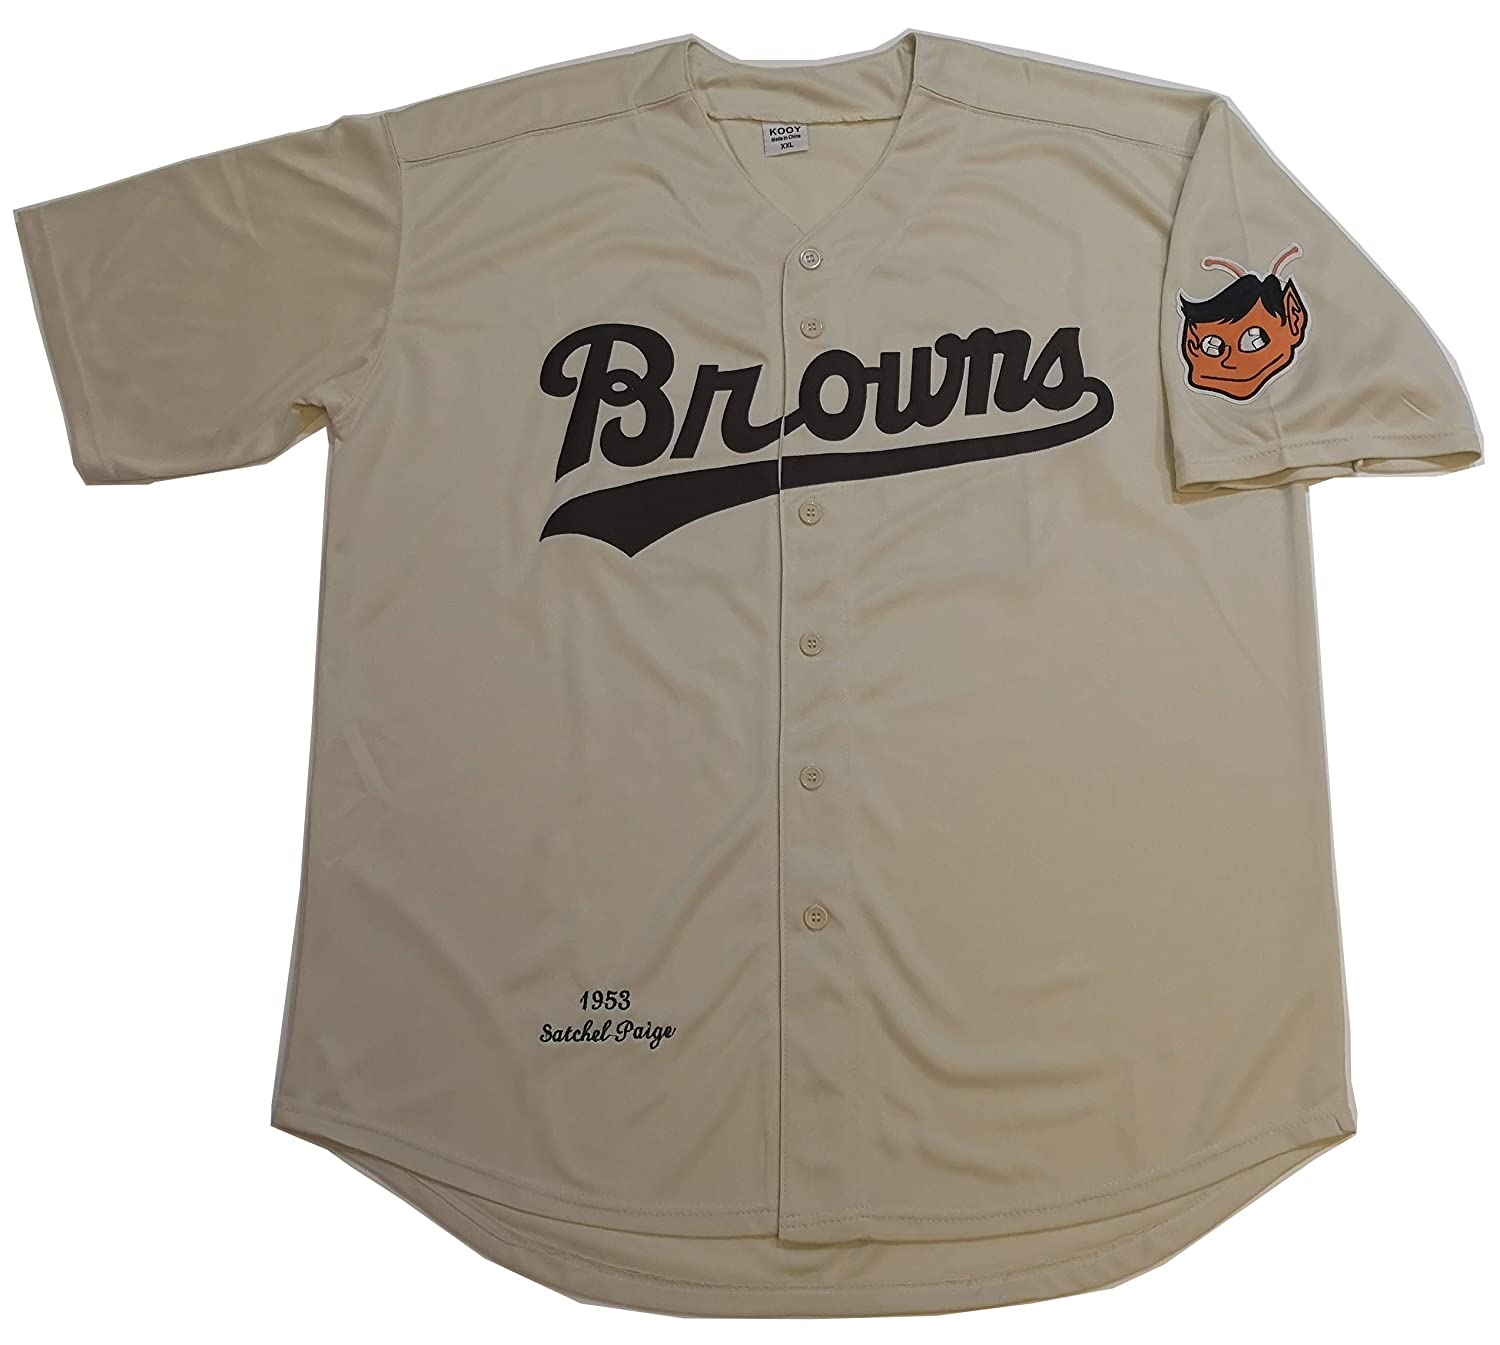 Louis Browns 1953 Throwback Vintage Baseball Jersey Kooy Satchel Paige #29 St